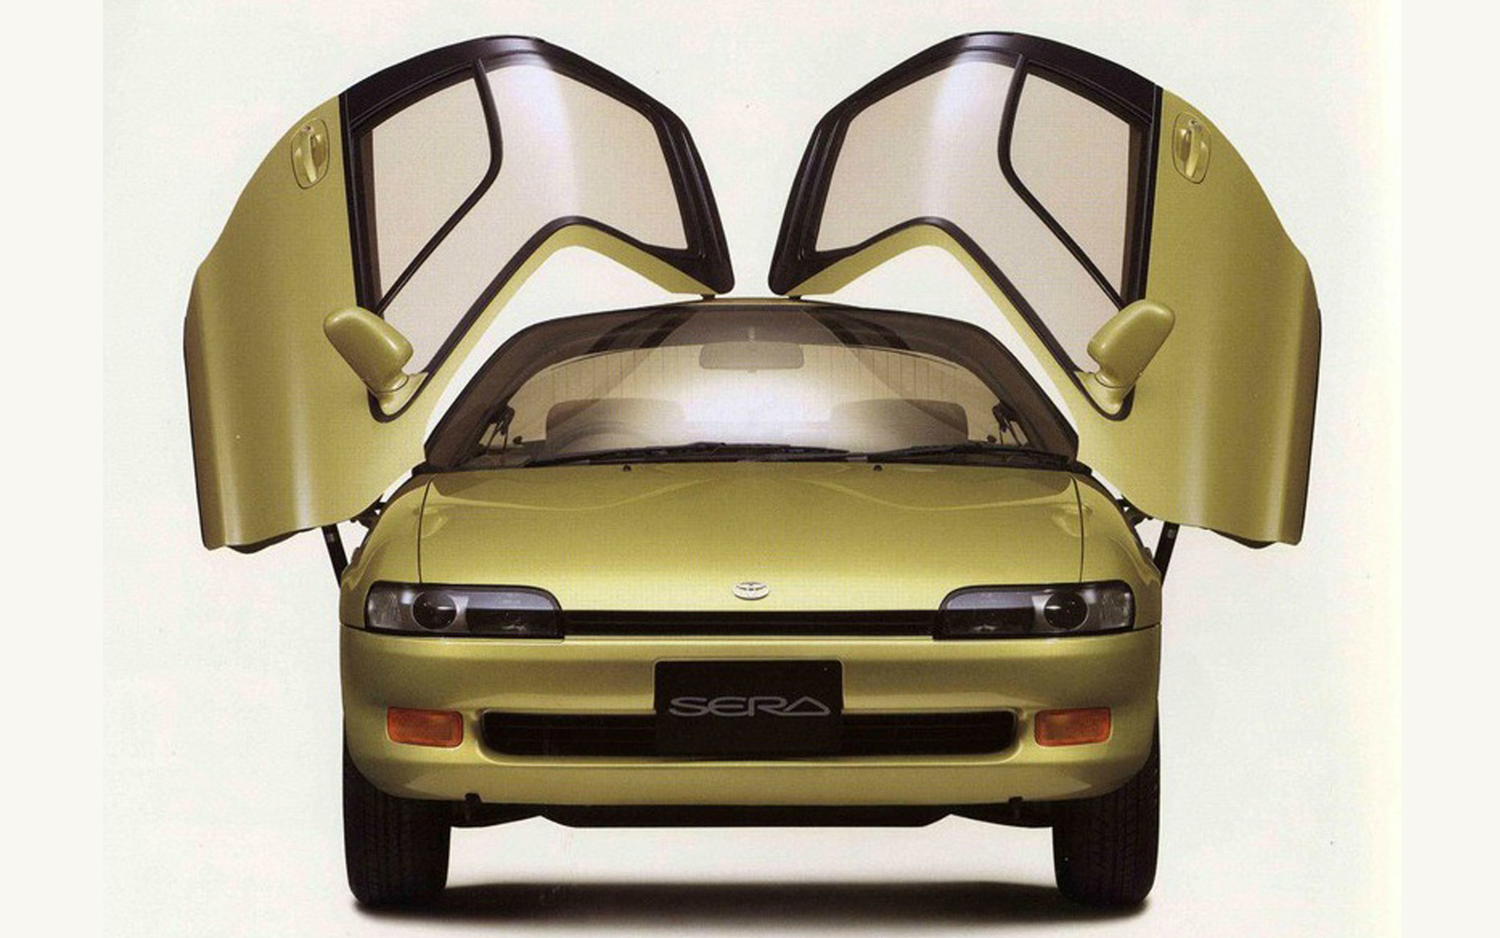 Top 10 Coolest Obscure Classic and Modern Toyotas